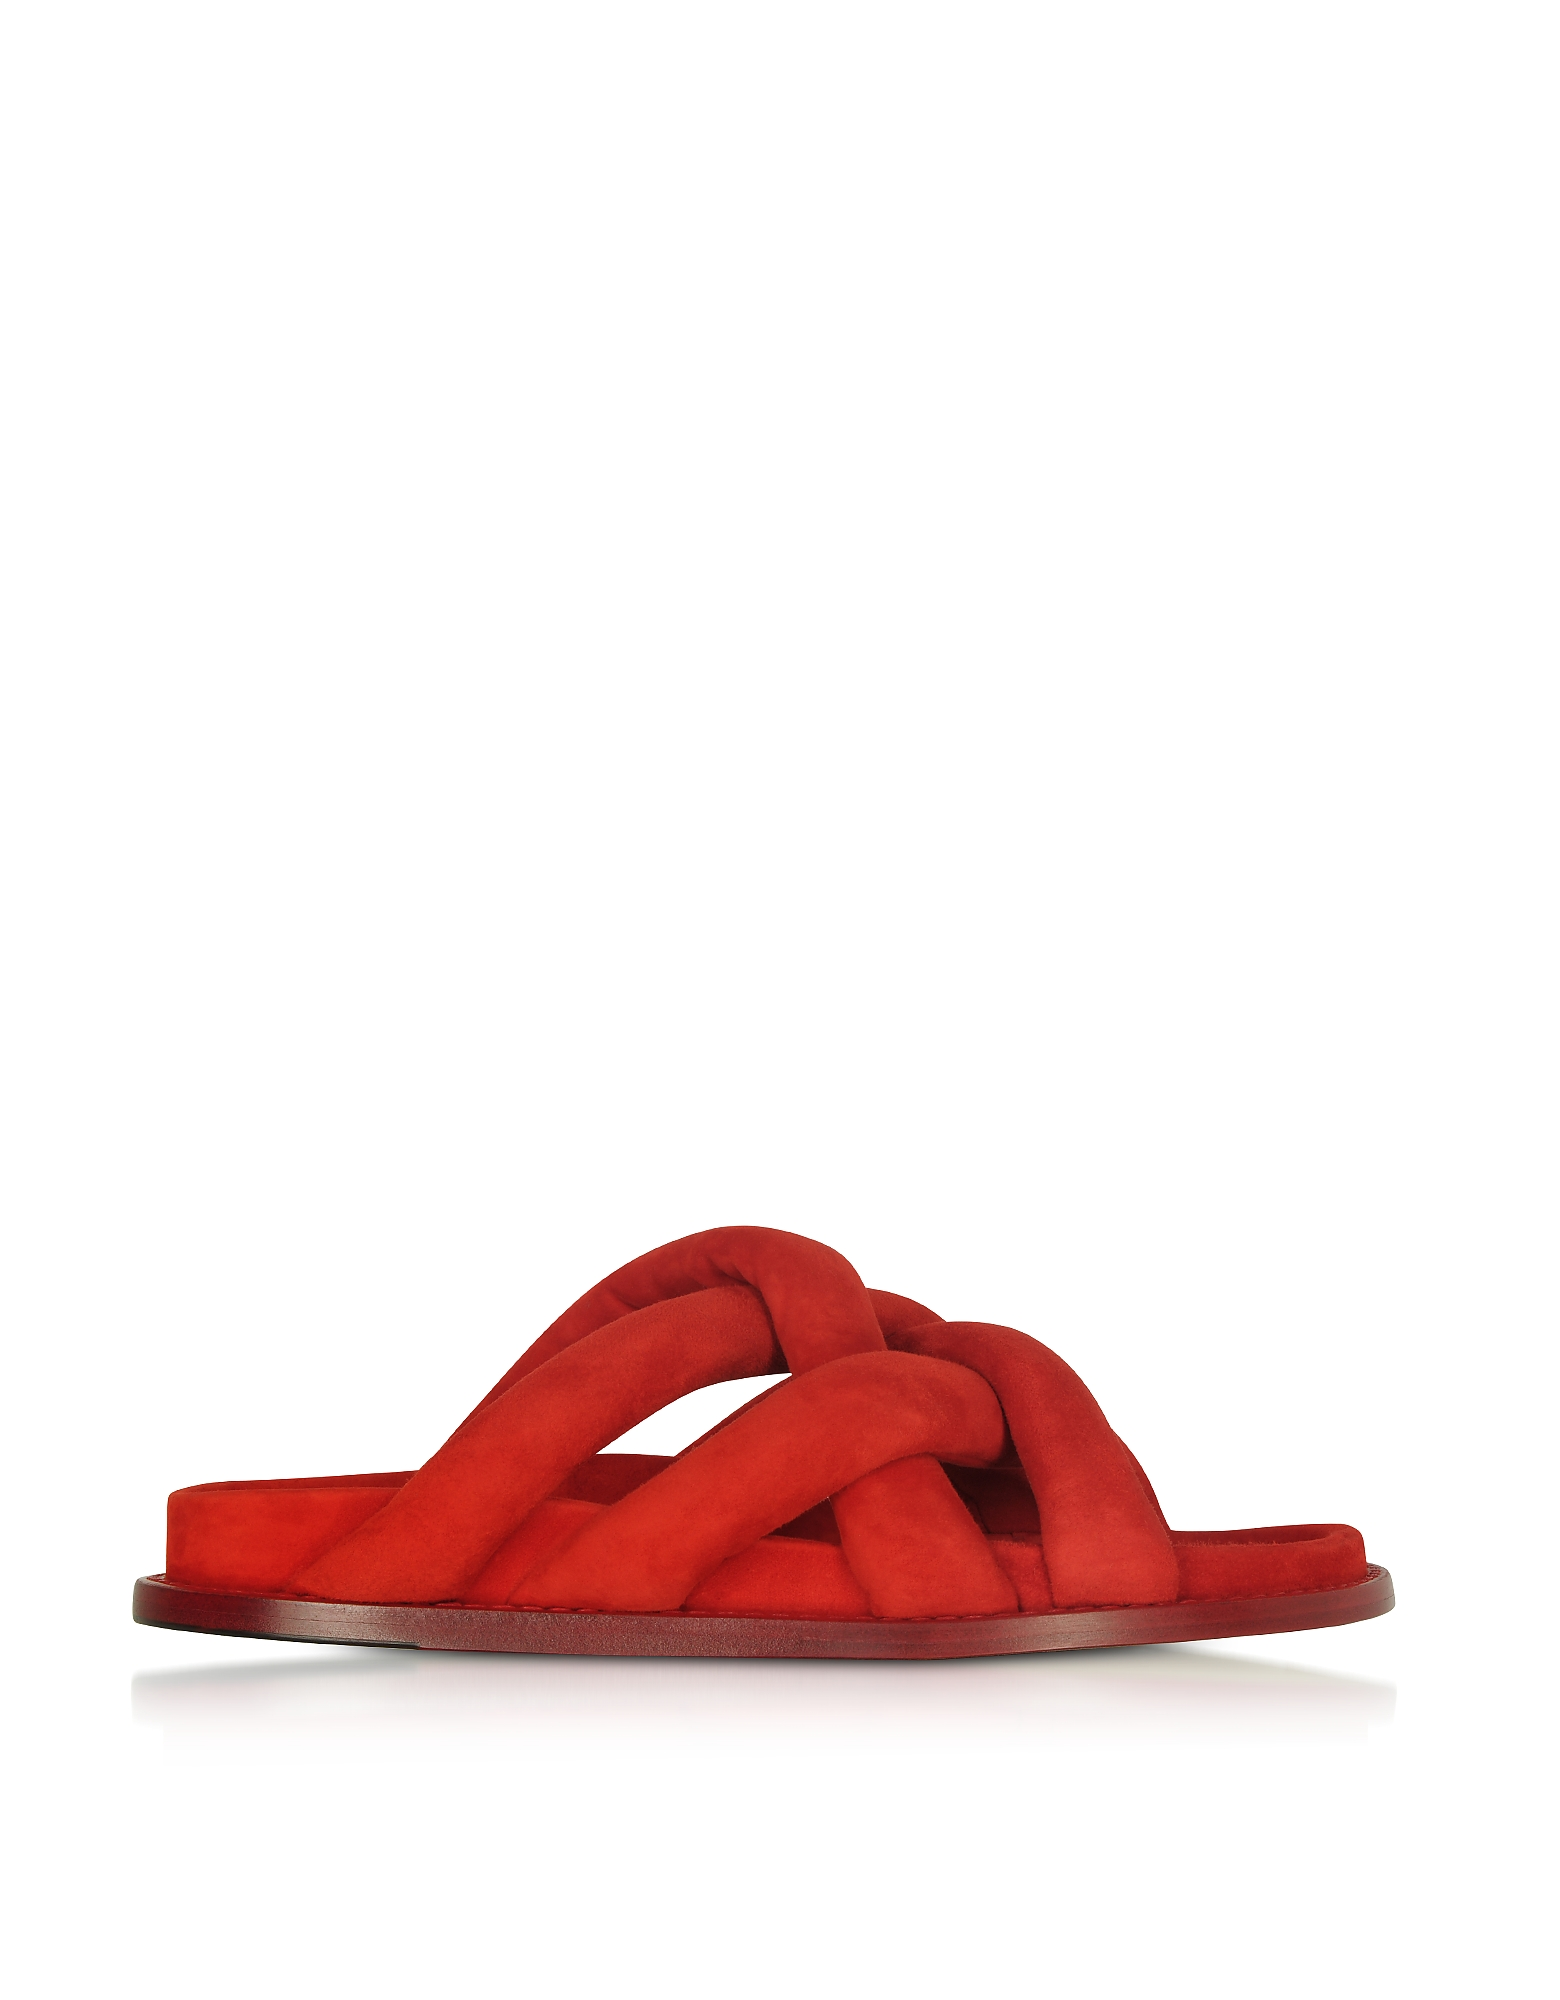 Proenza Schouler Shoes, Tulip Red Suede Flat Sandals